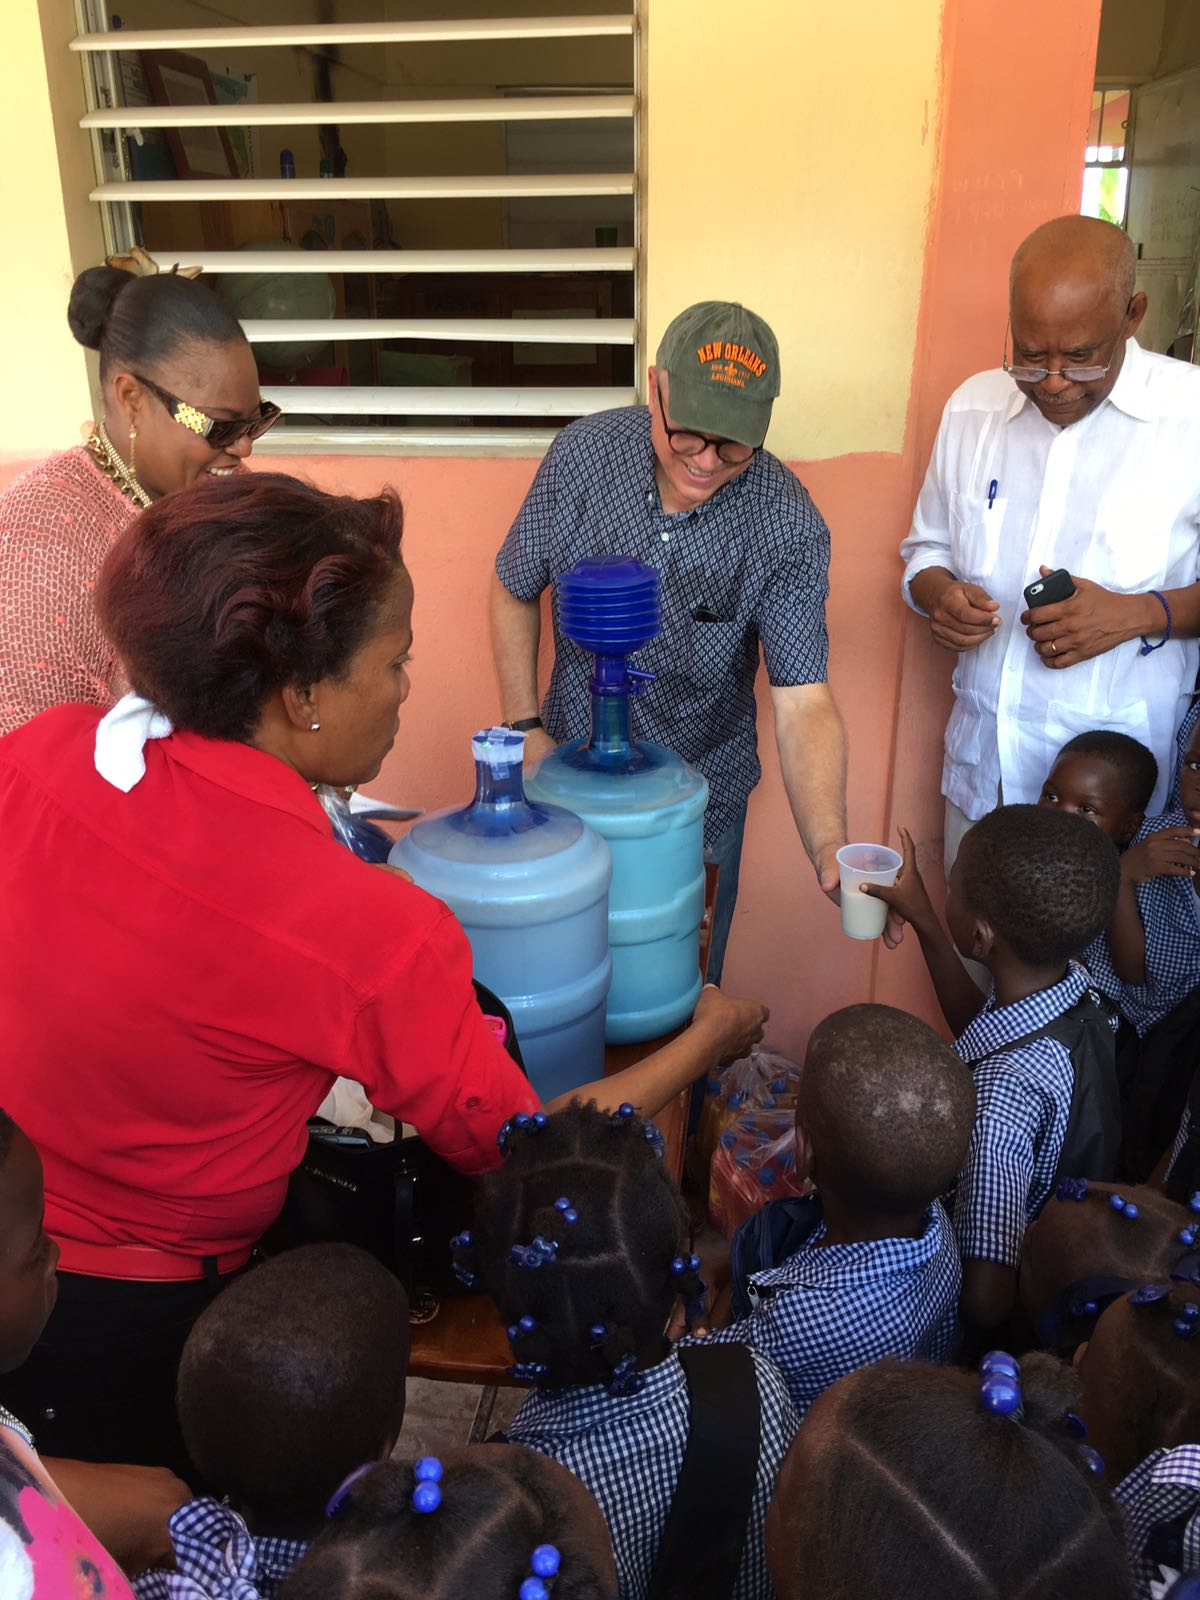 Distributing SoyShake to children in a rural school directly impacted by the hurricane